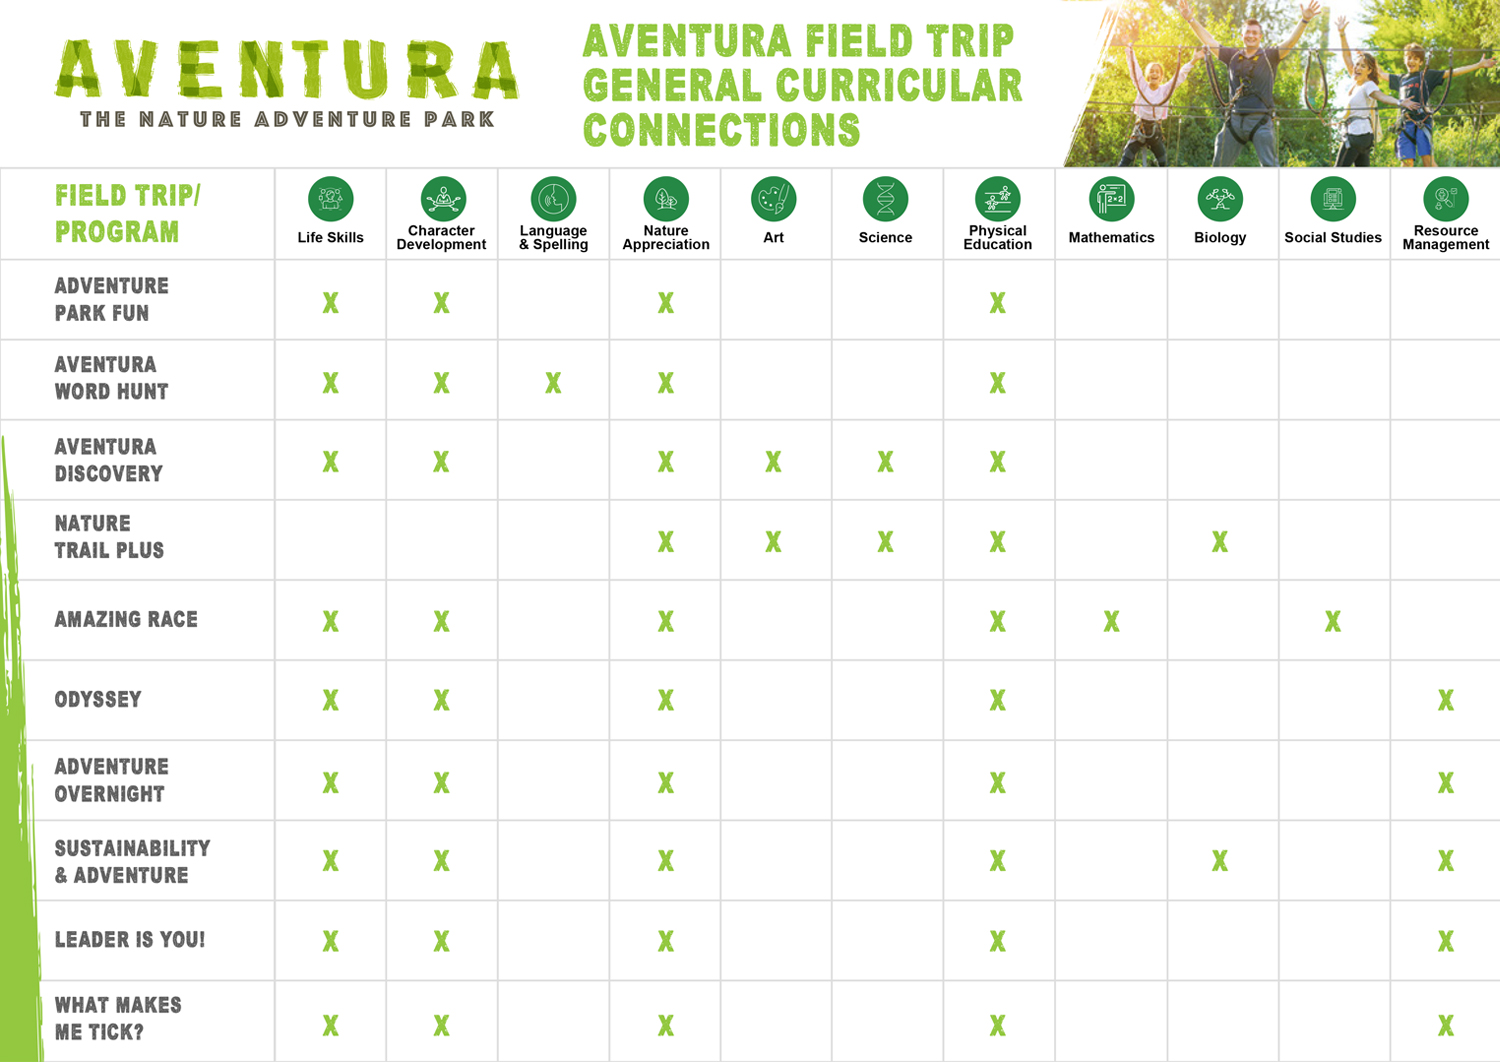 Aventura_Field_Trip_General_Curricular_Connections